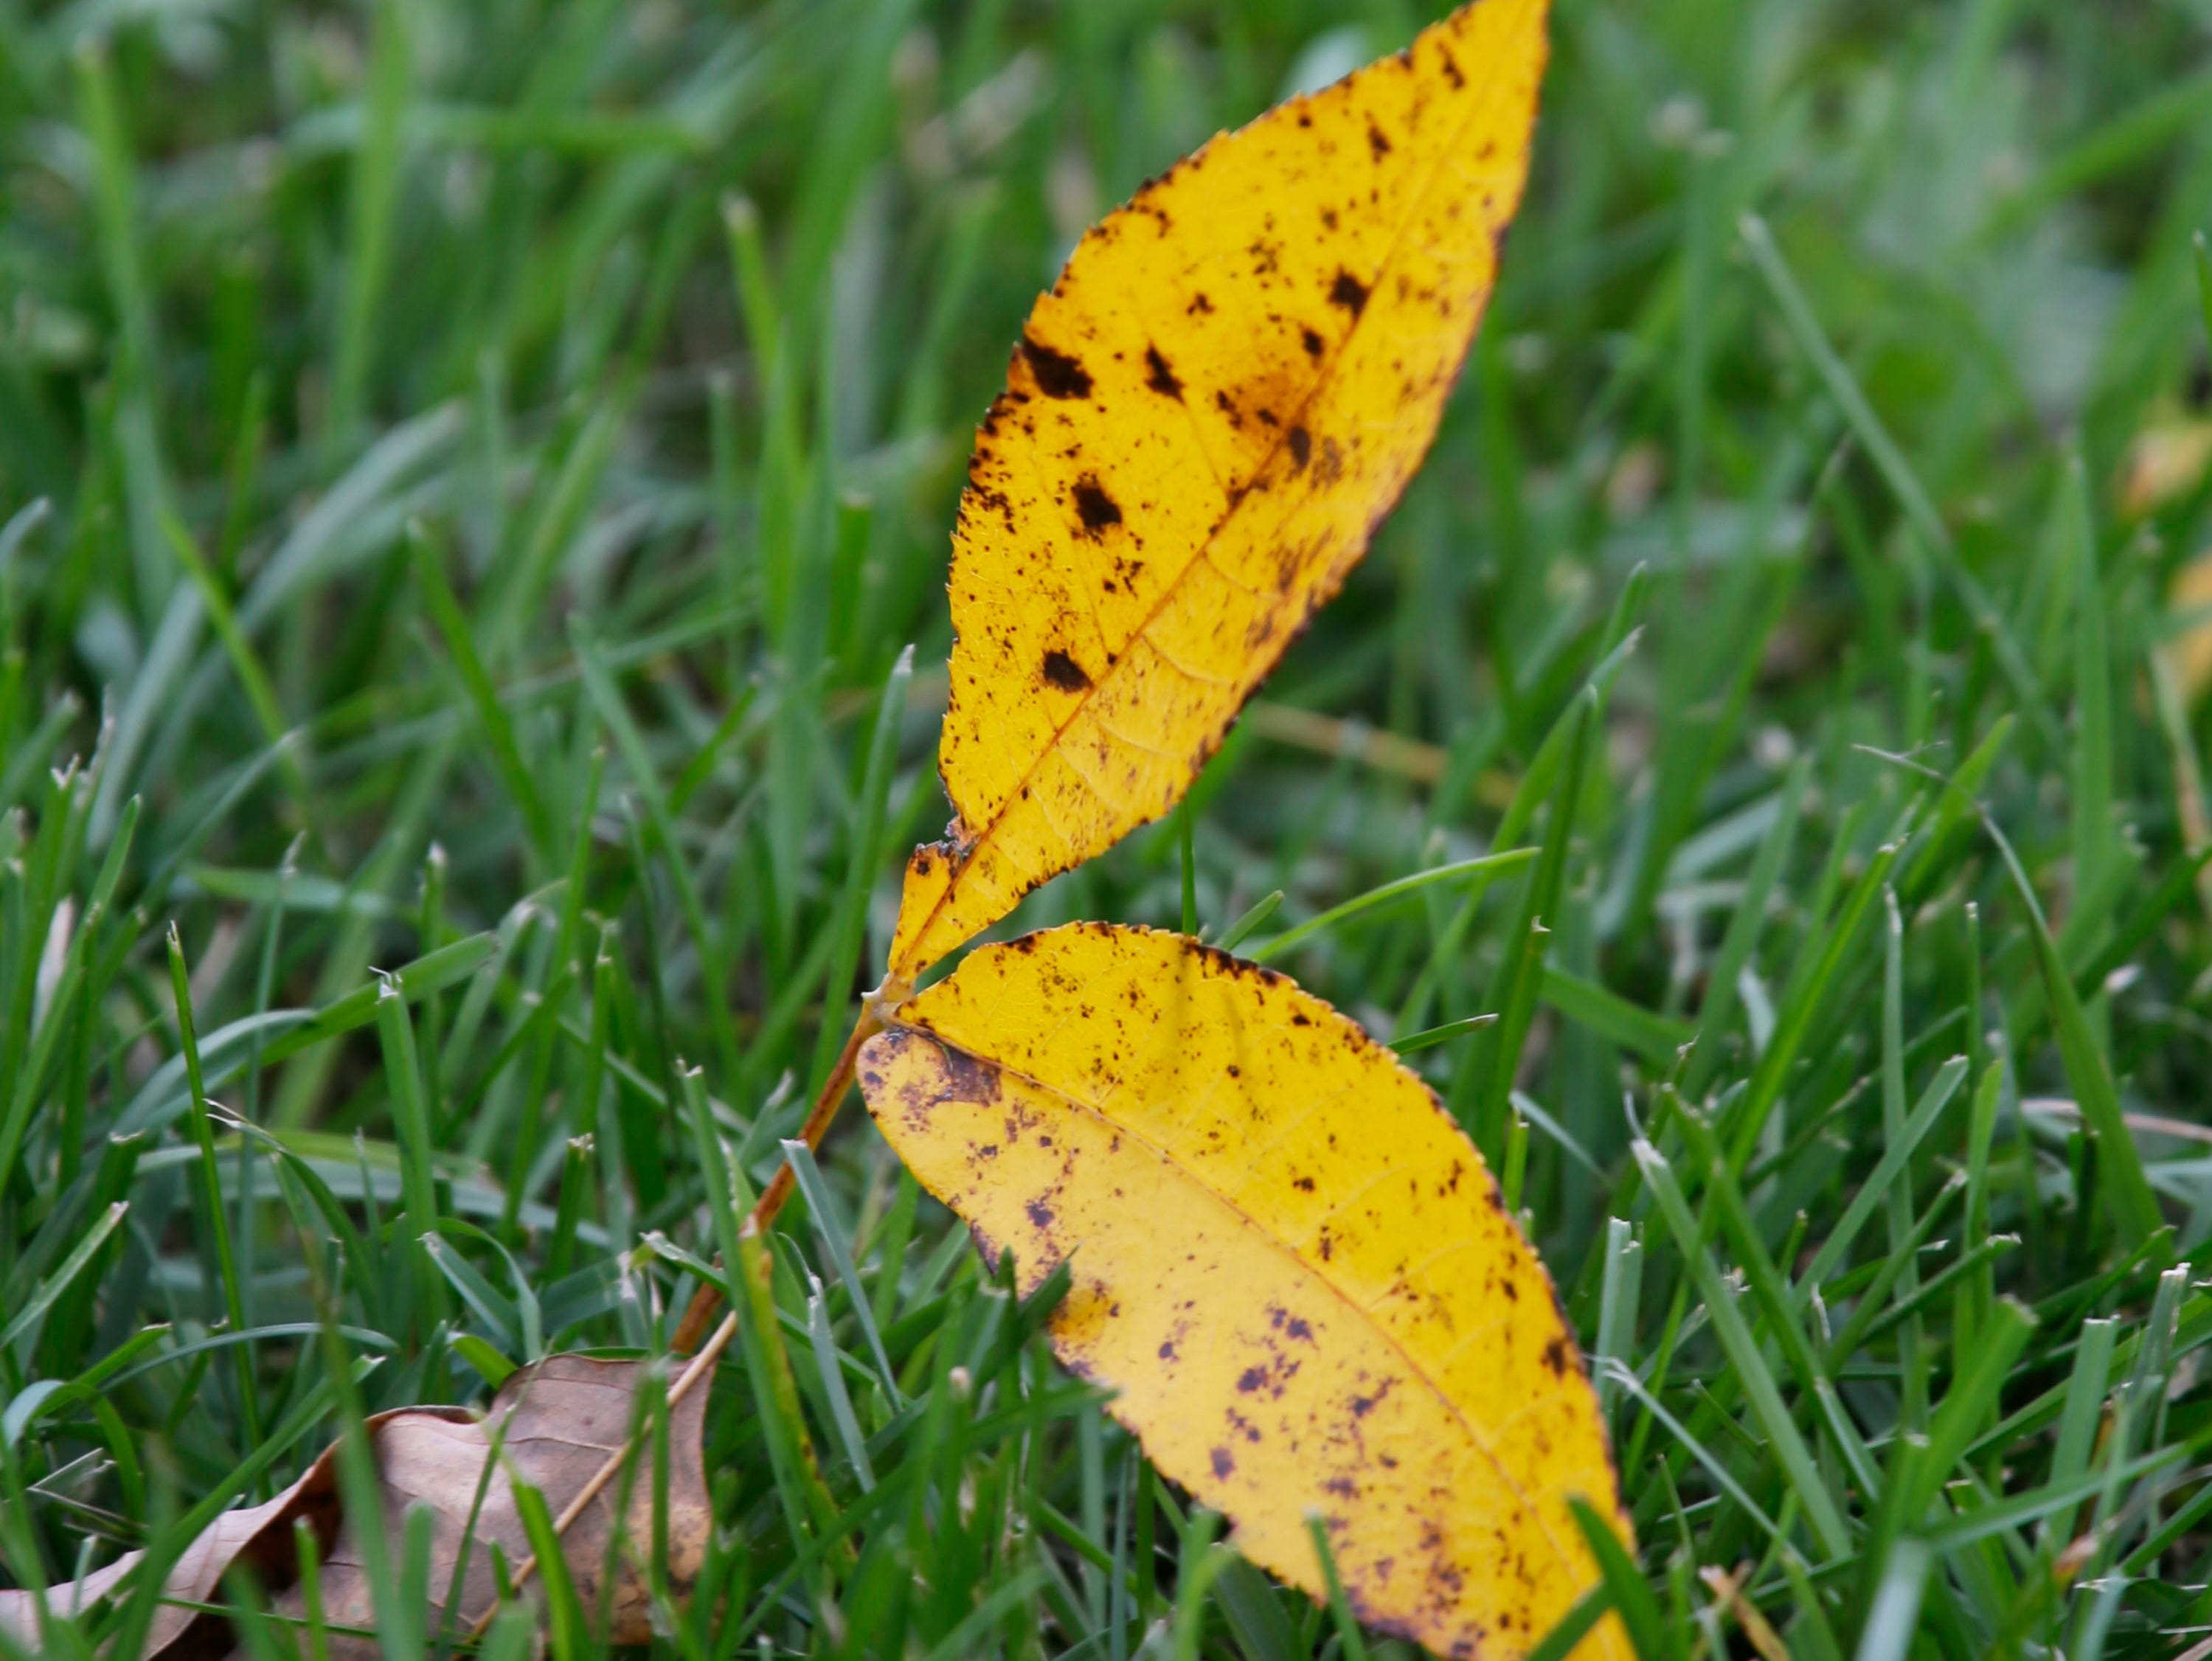 A fallen leaf contrasts with green grass at Taylor Park, Thursday, October 11, 2018, in Sheboygan, Wis.